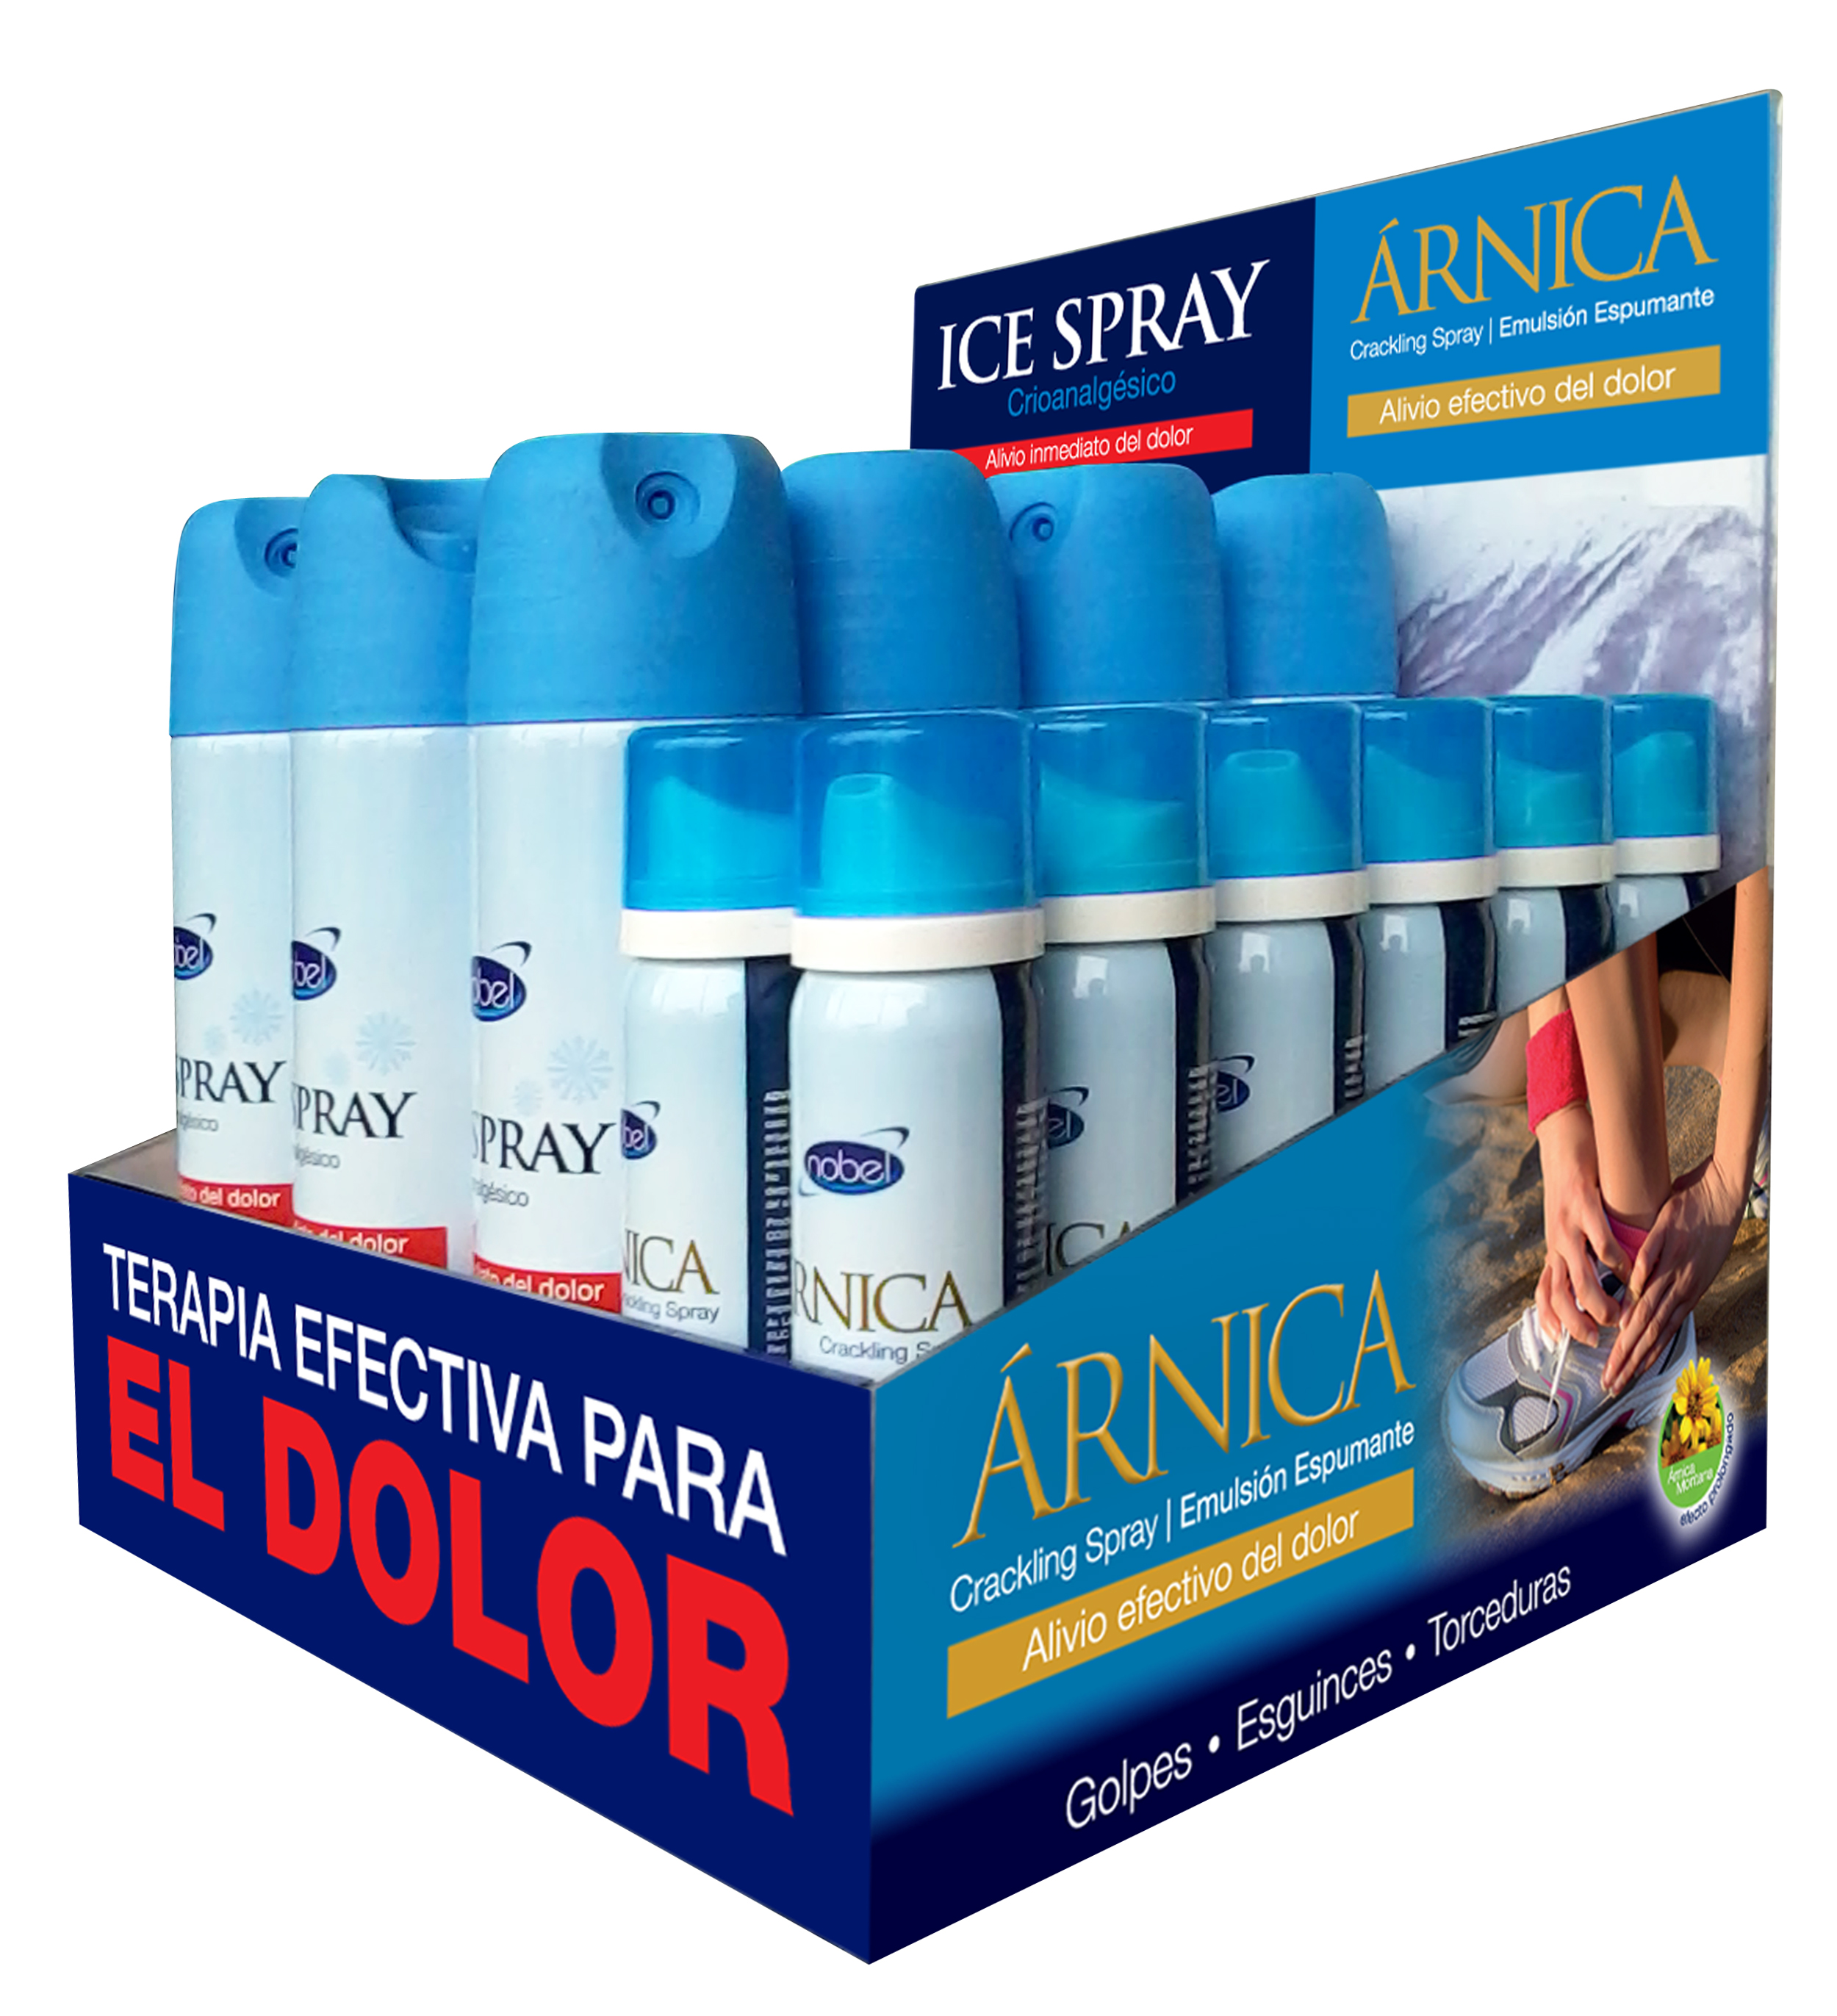 Árnica Crackling Spray